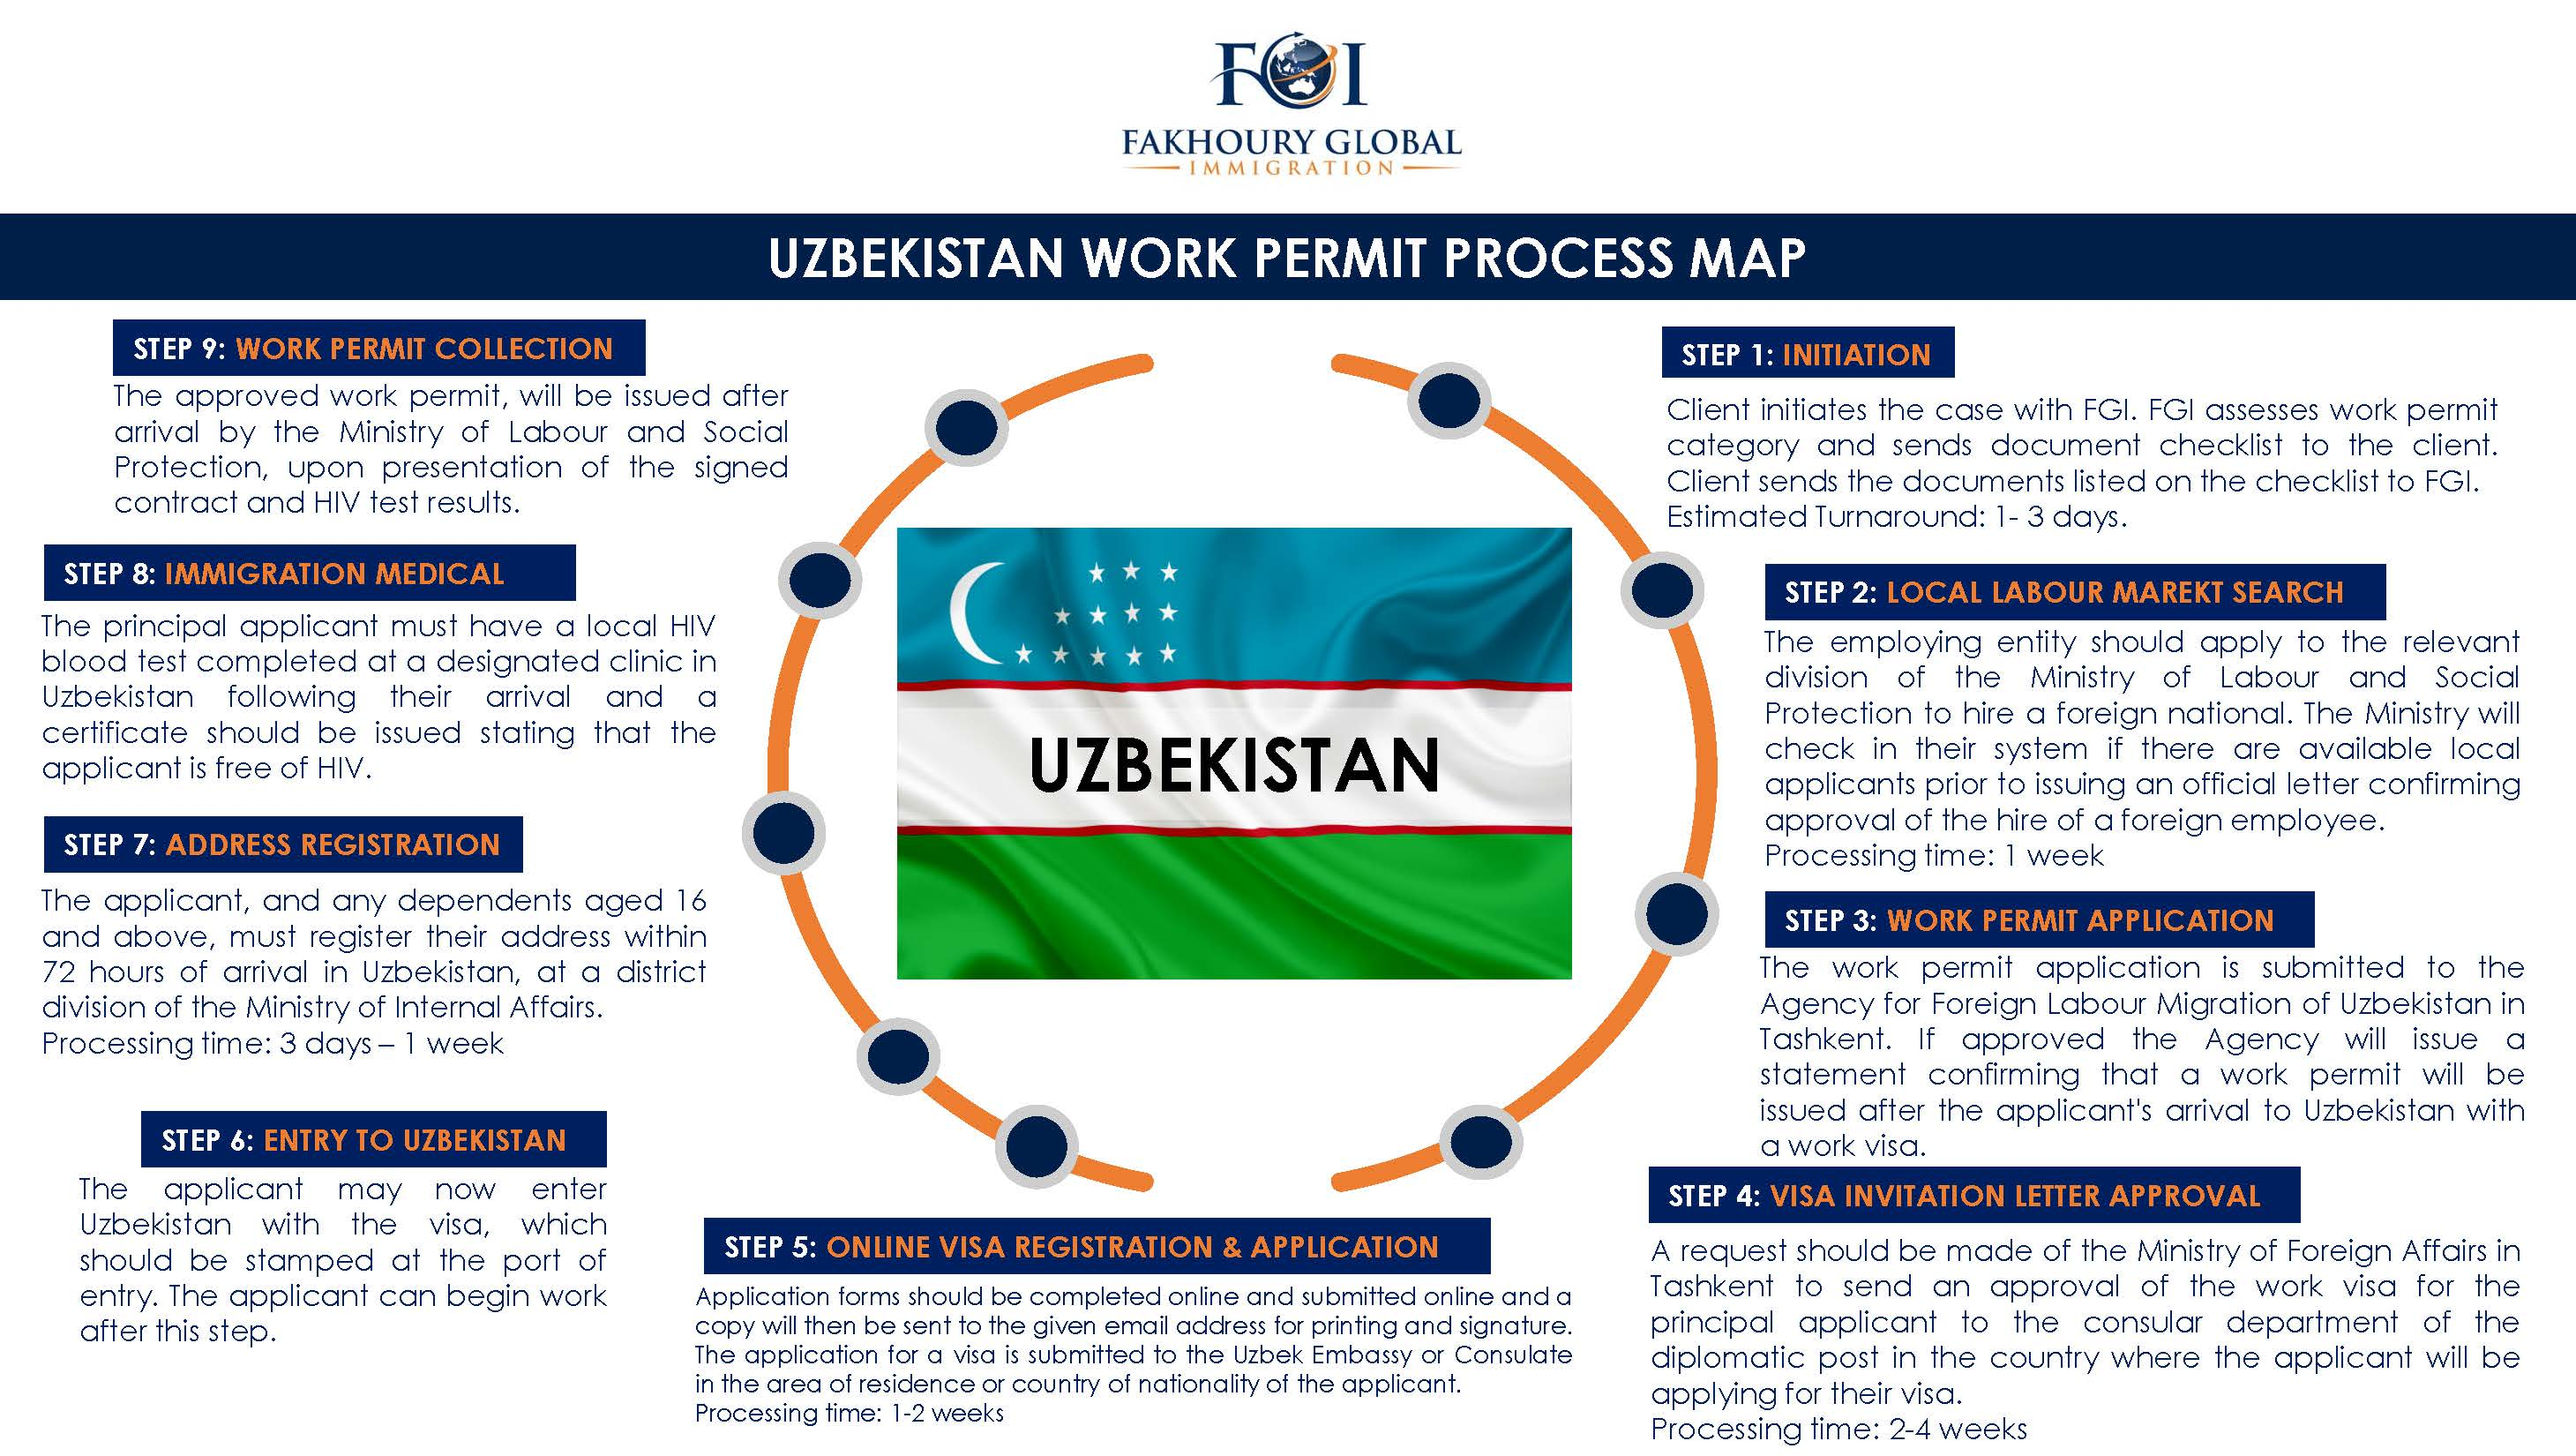 Fakhoury global immigration uzbekistan country guides are available by request please contact us stopboris Image collections